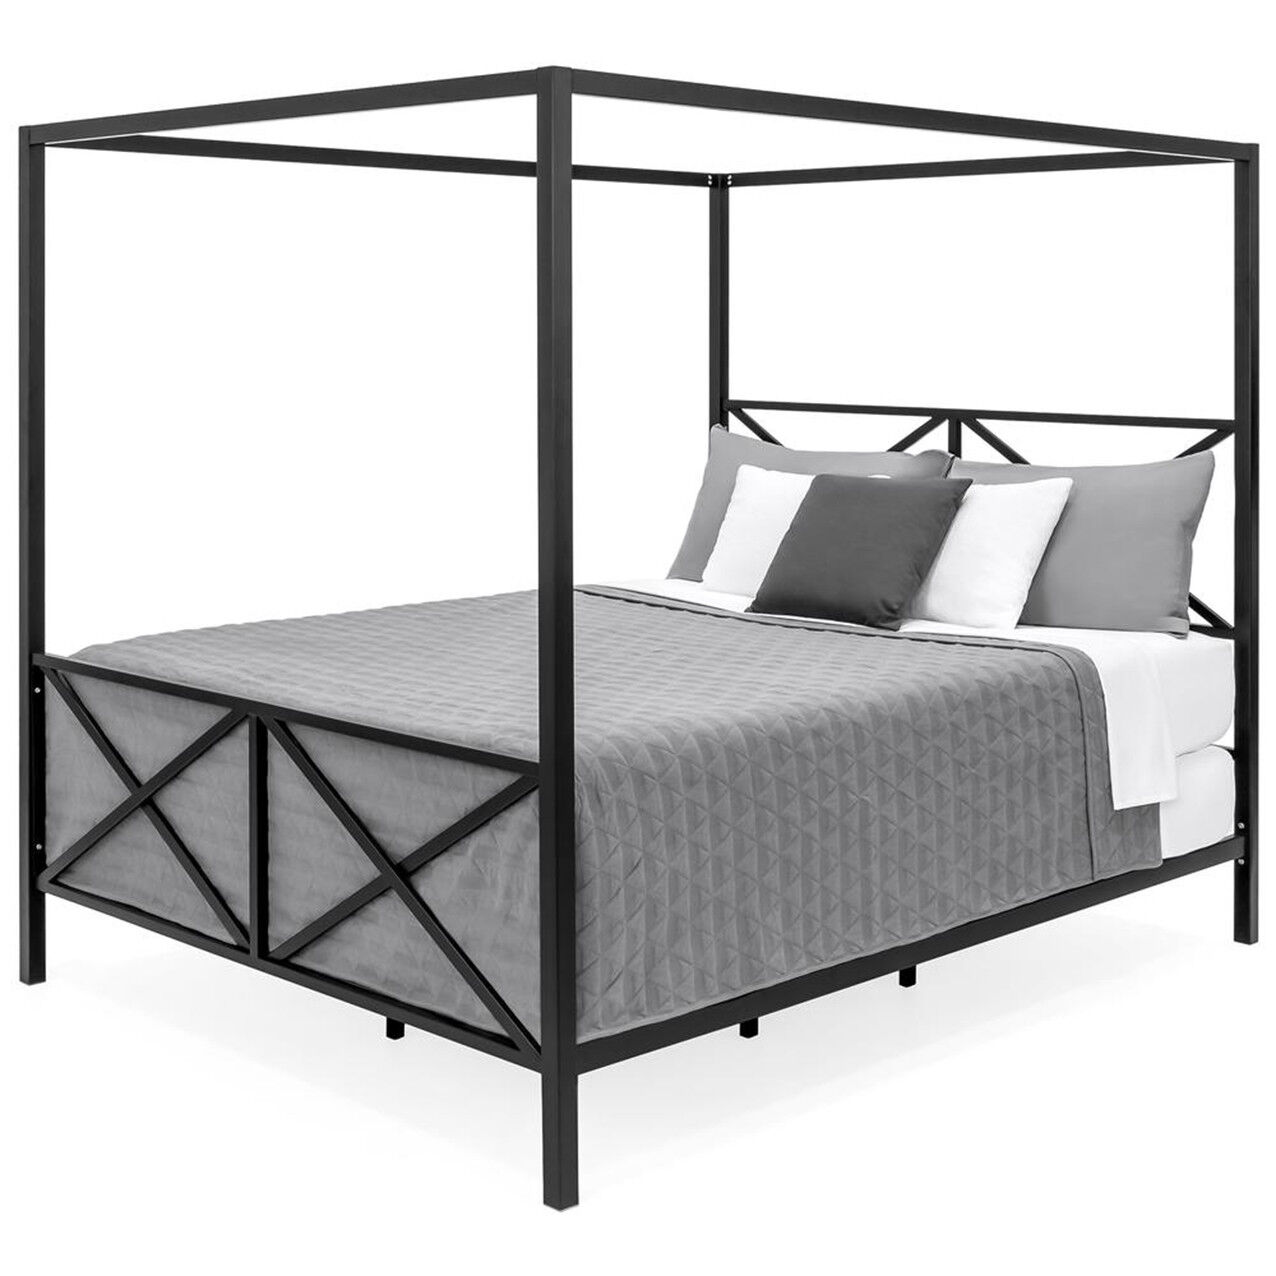 - Queen Canopy Bed Frame Black Metal Finish Slat Base Modern Bedroom